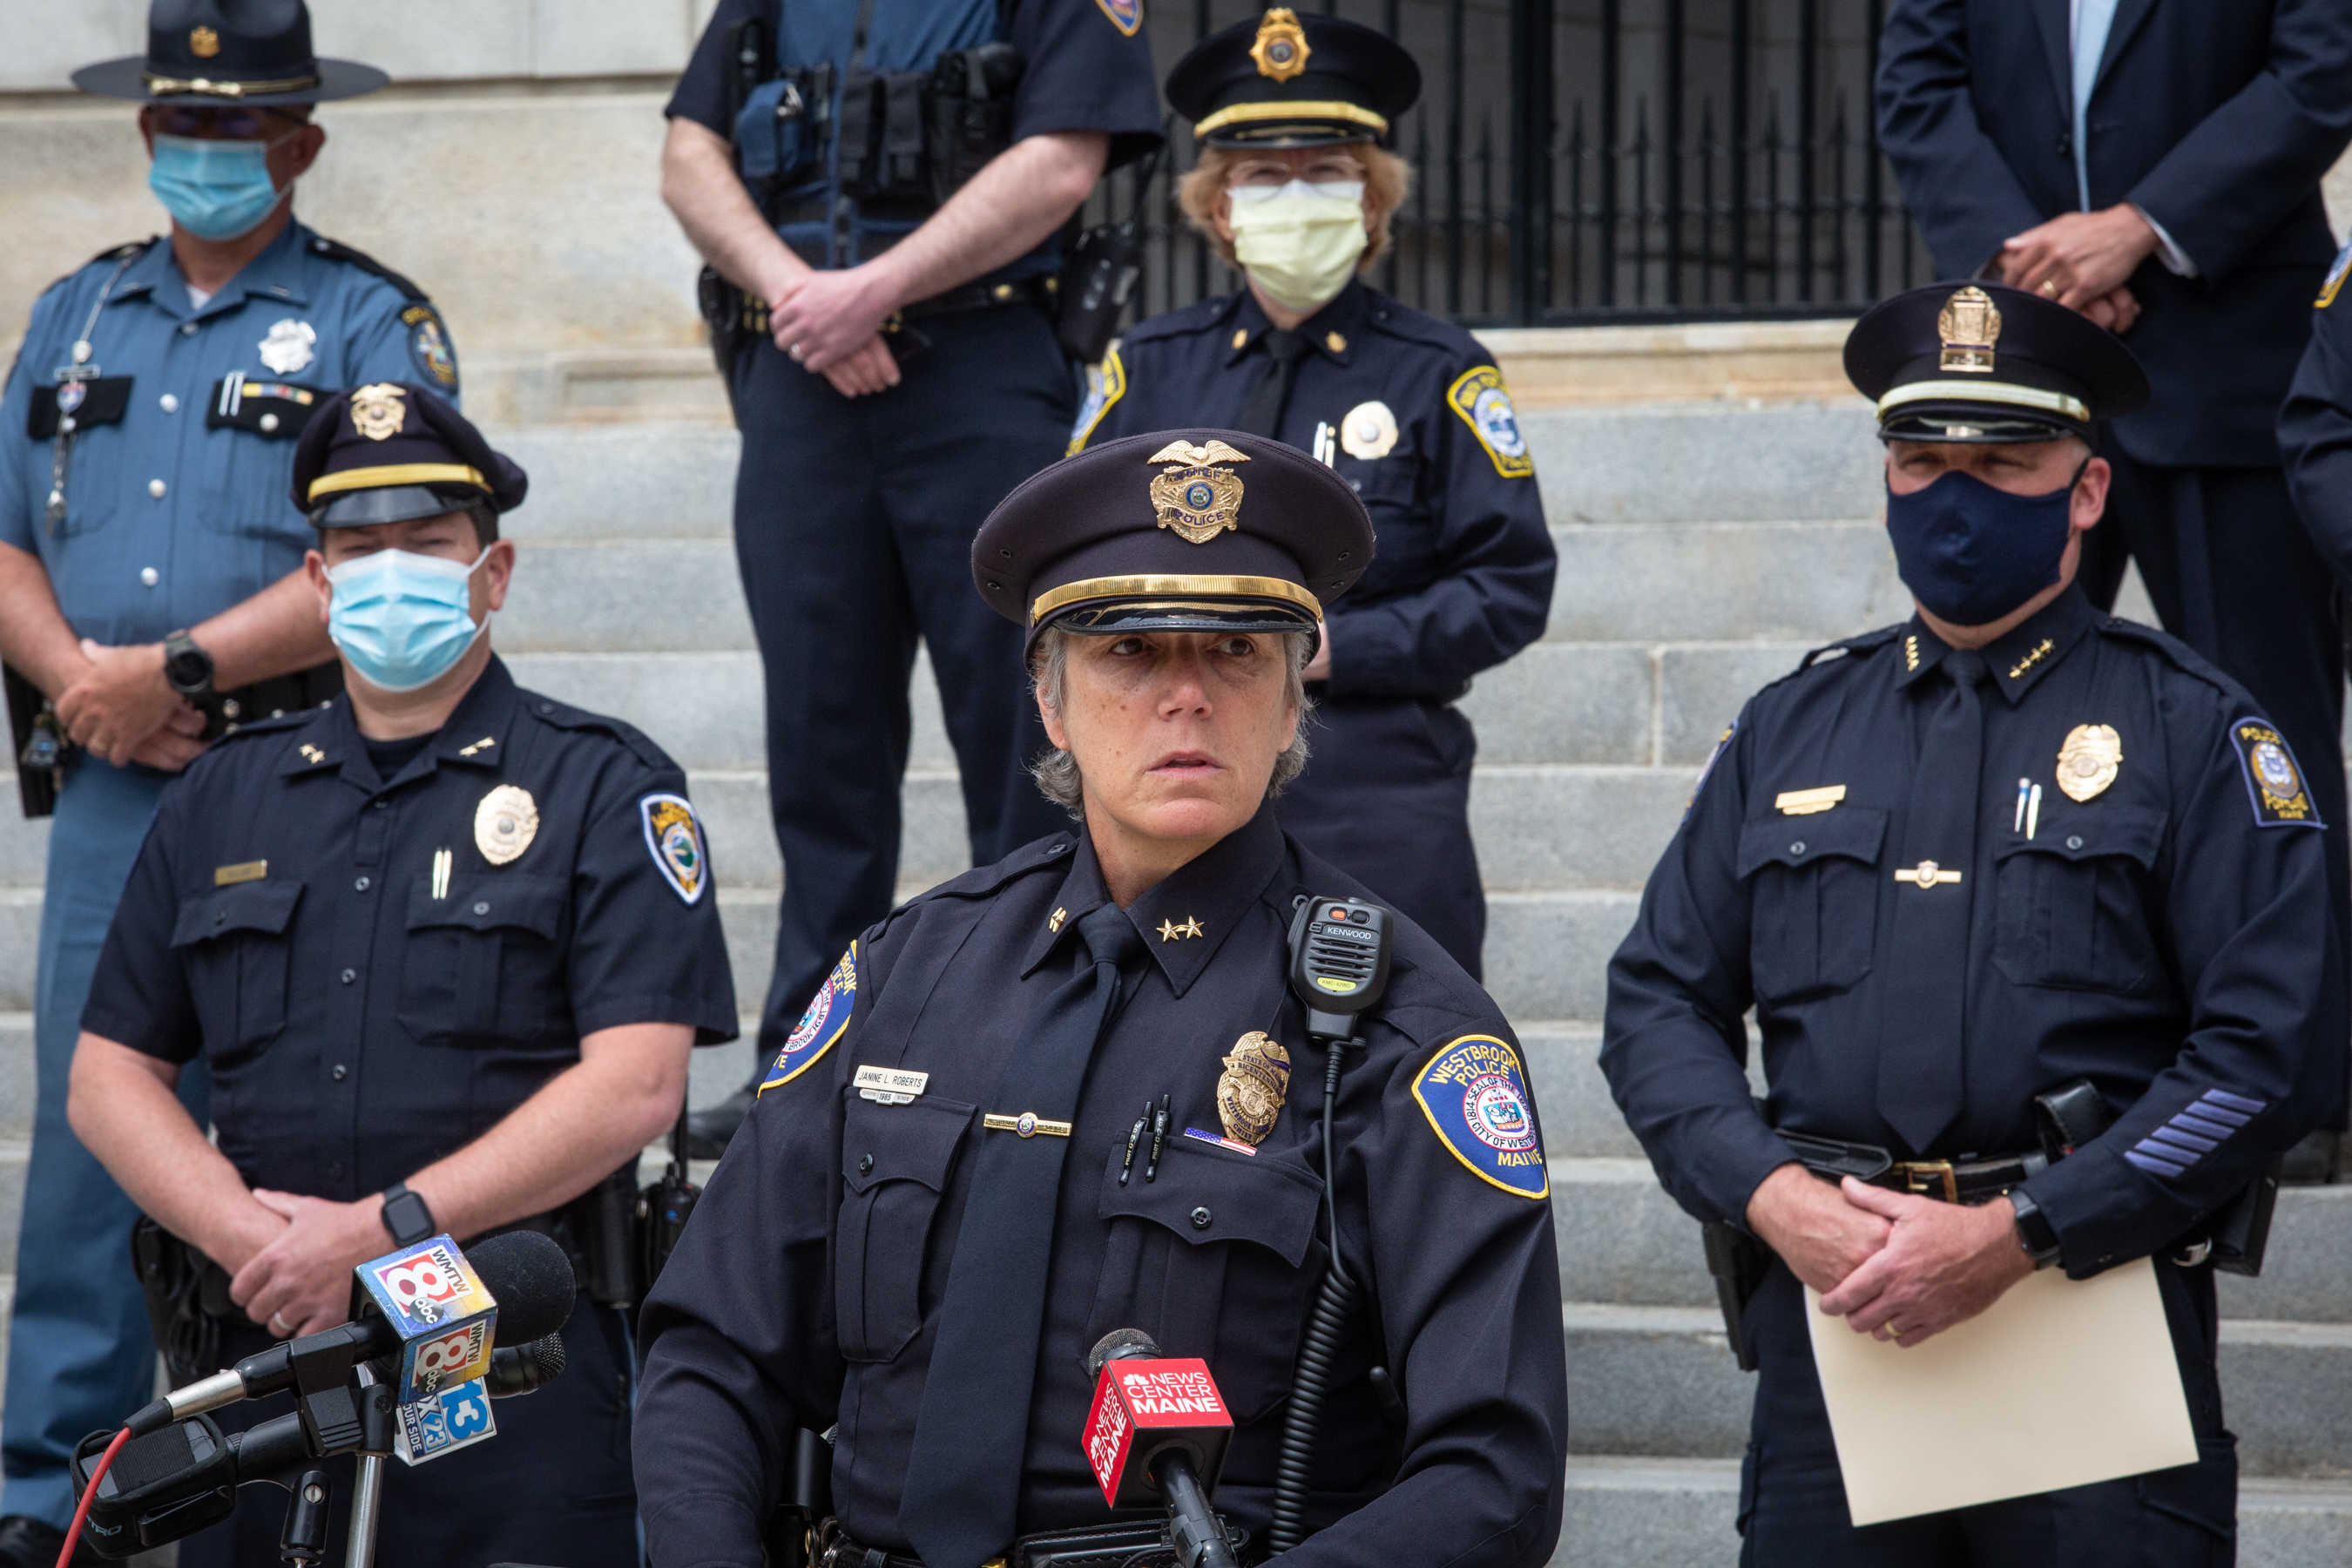 Maine police say they want to end racism in policing but have opposed  efforts to track their treatment of minorities